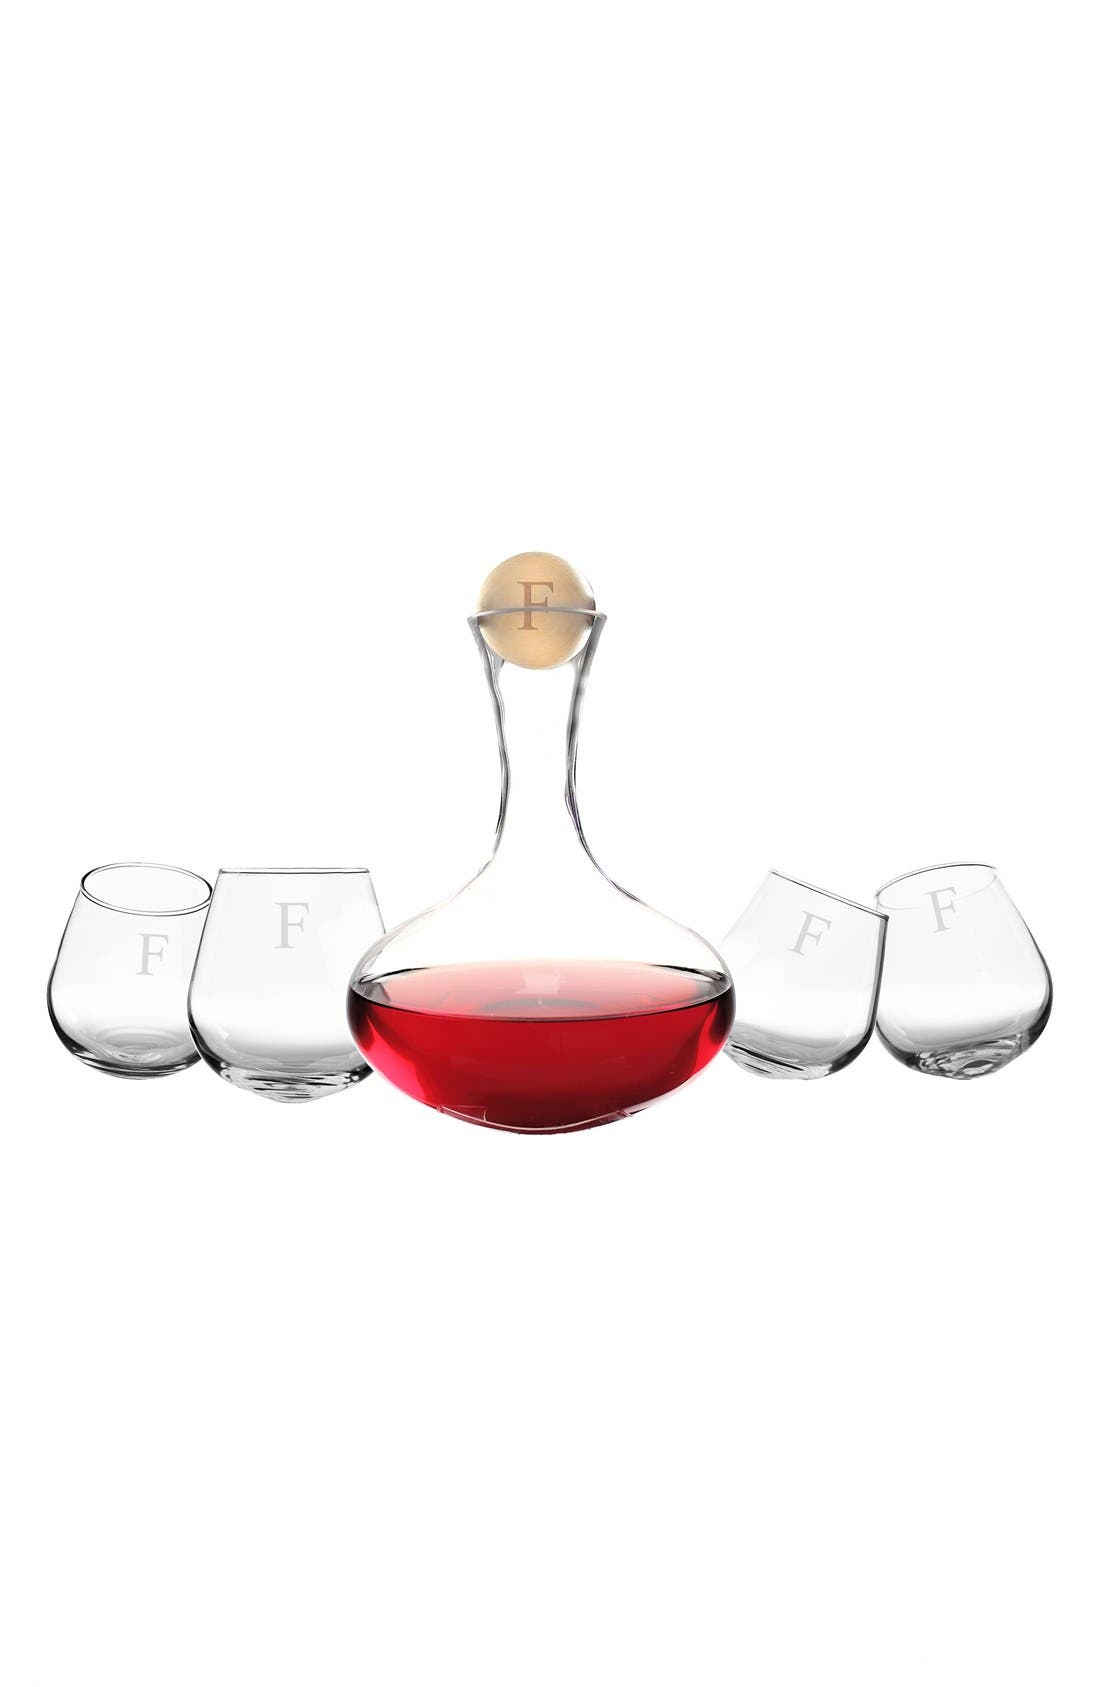 Cathy's Concepts 'Tipsy' Monogram Wine Decanter & Stemless Glasses (Set of 5)